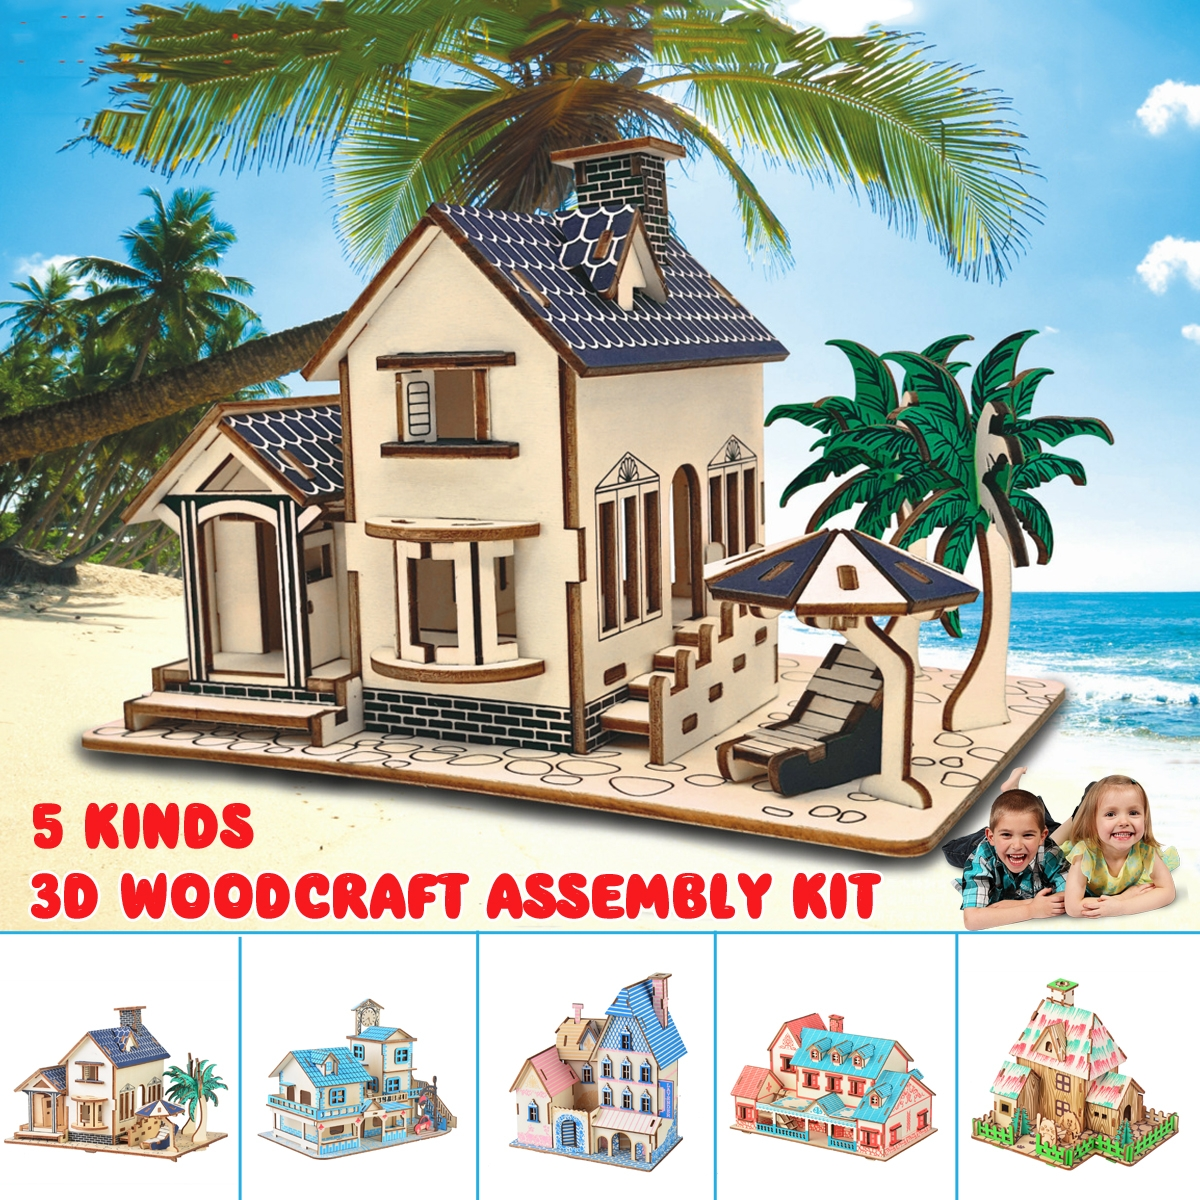 3D Woodcraft Assembly Doll House Kit Decoration Toy Model for Kids Gift